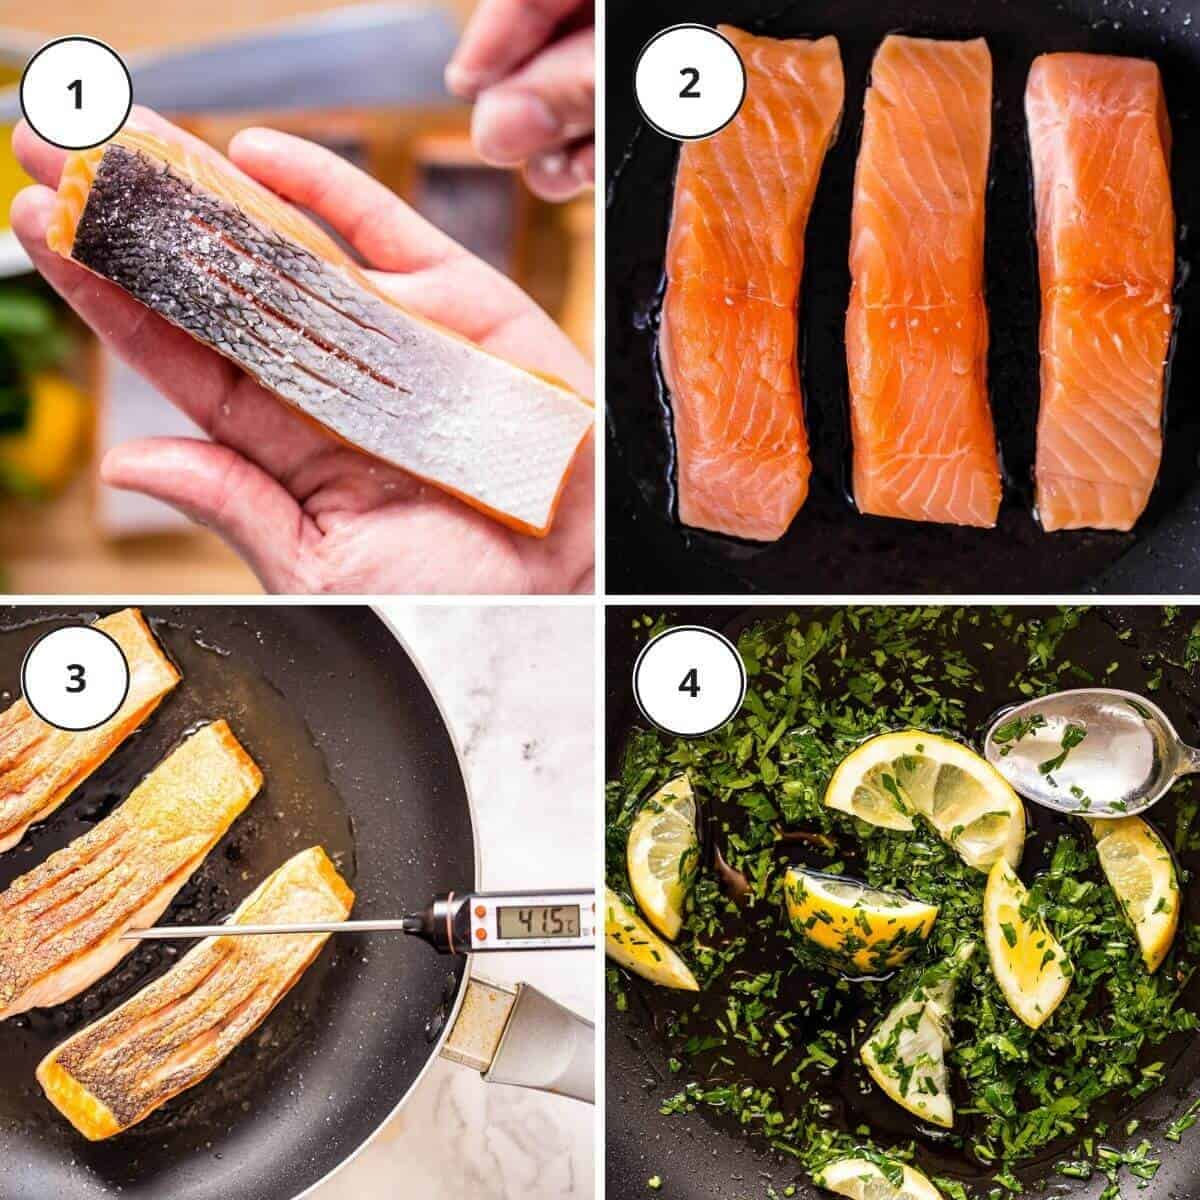 picture instructions how to pan fry salmon fillet.